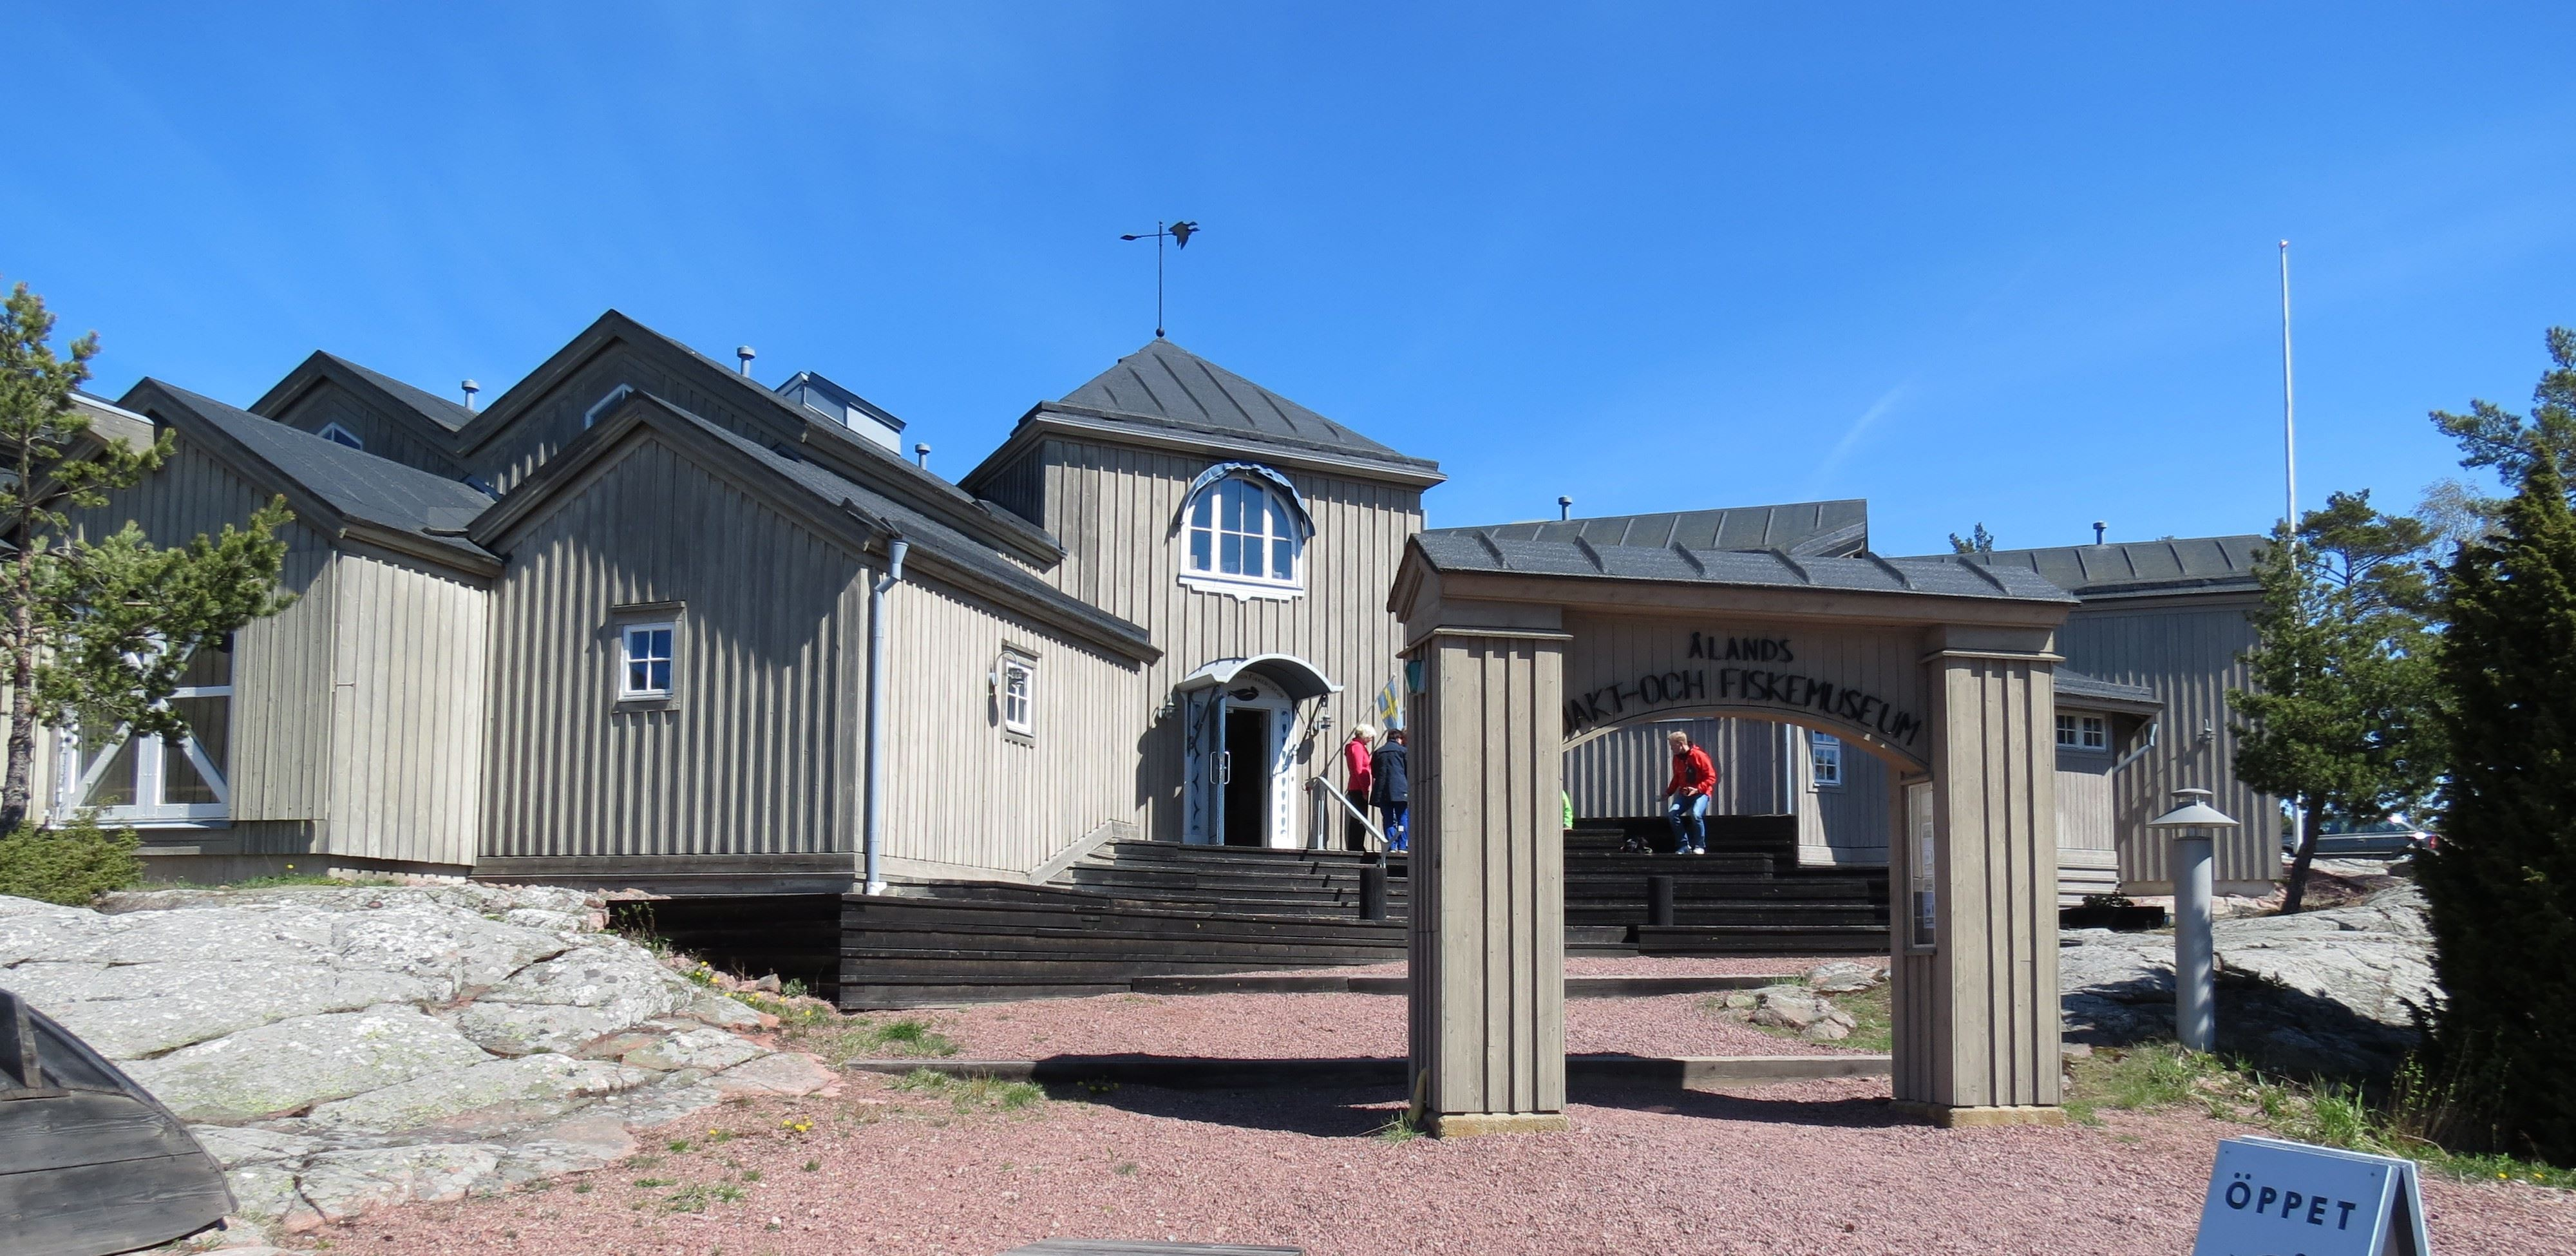 Entrance to Åland Hunting & fishing museum